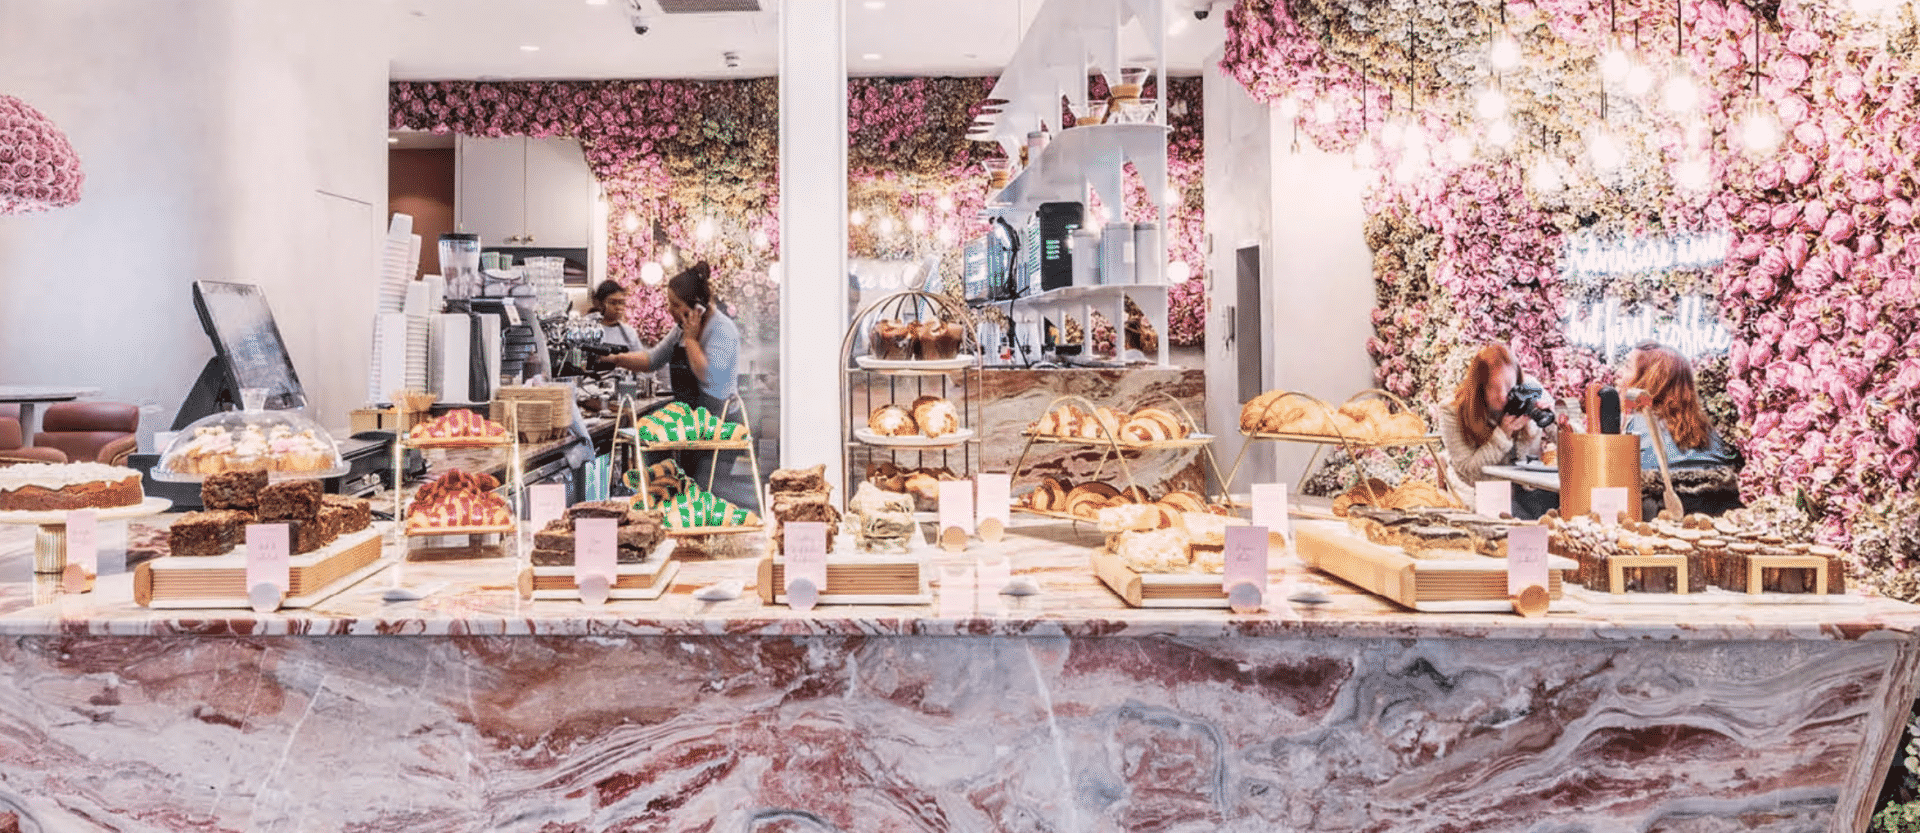 Instagrammable cafes in London